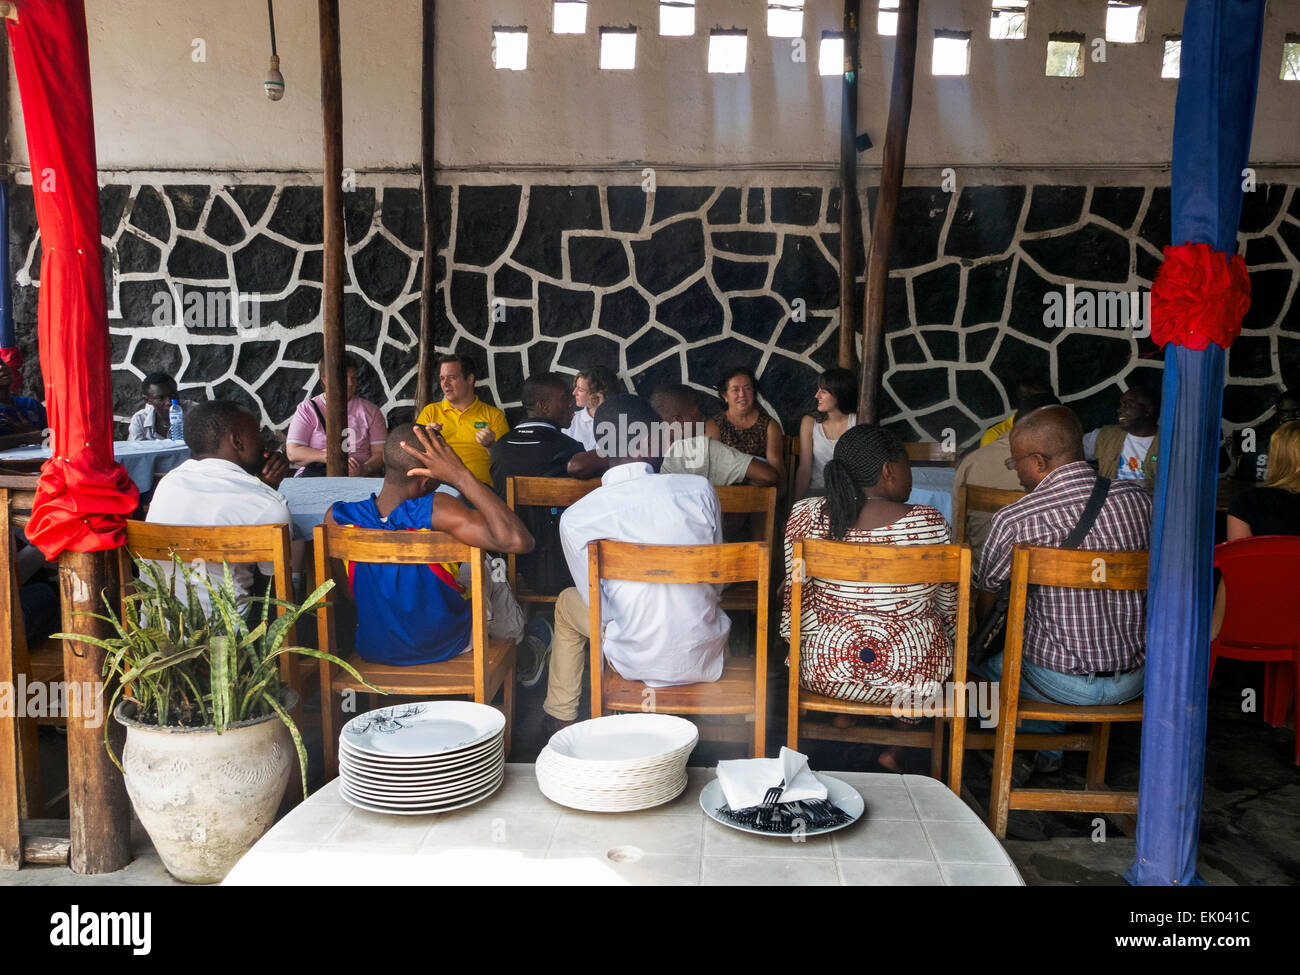 People sitting in a restaurant, Goma, Democratic Republic of Congo ( DRC ), Africa - Stock Image